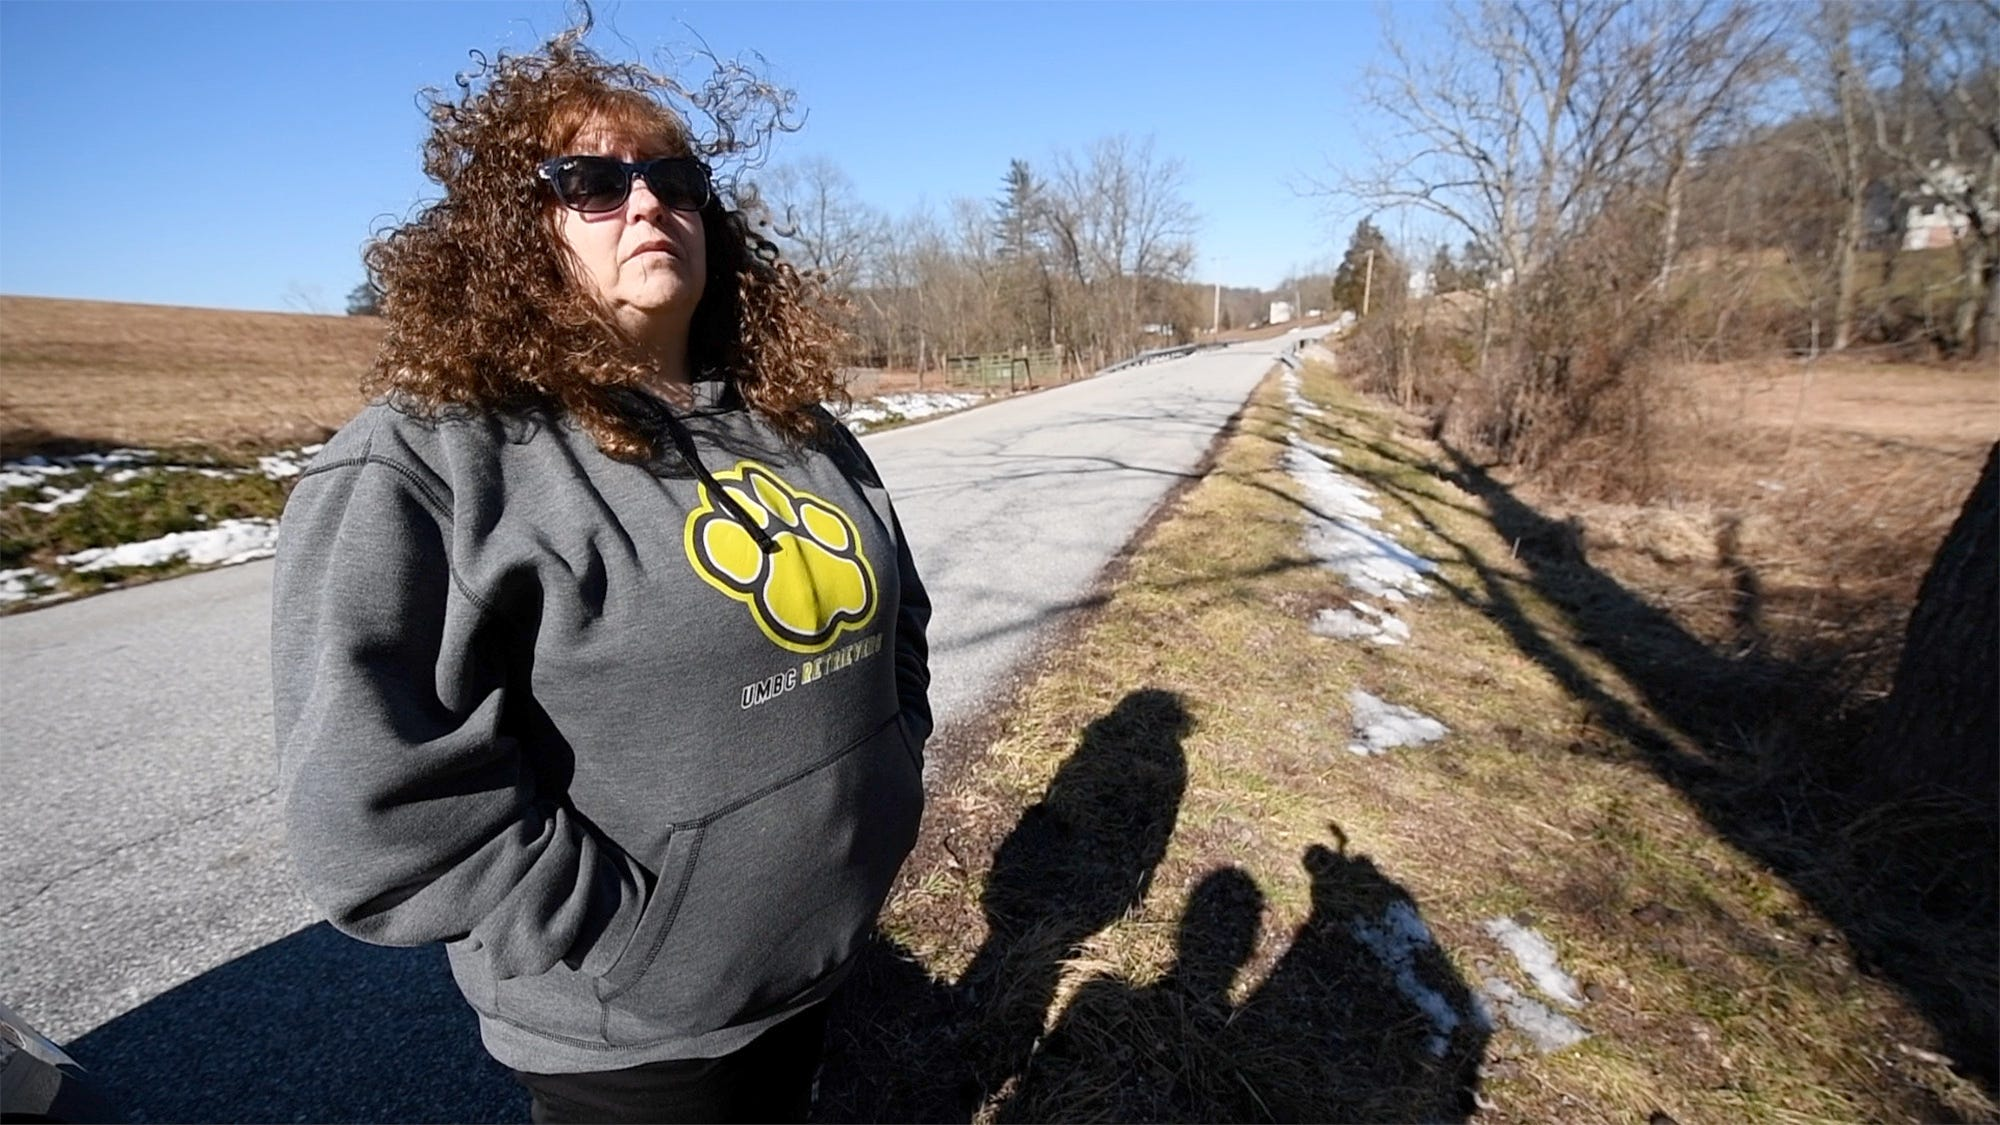 Stepdaughter visits rural scene where evidence was found of missing Thomas  Hayden